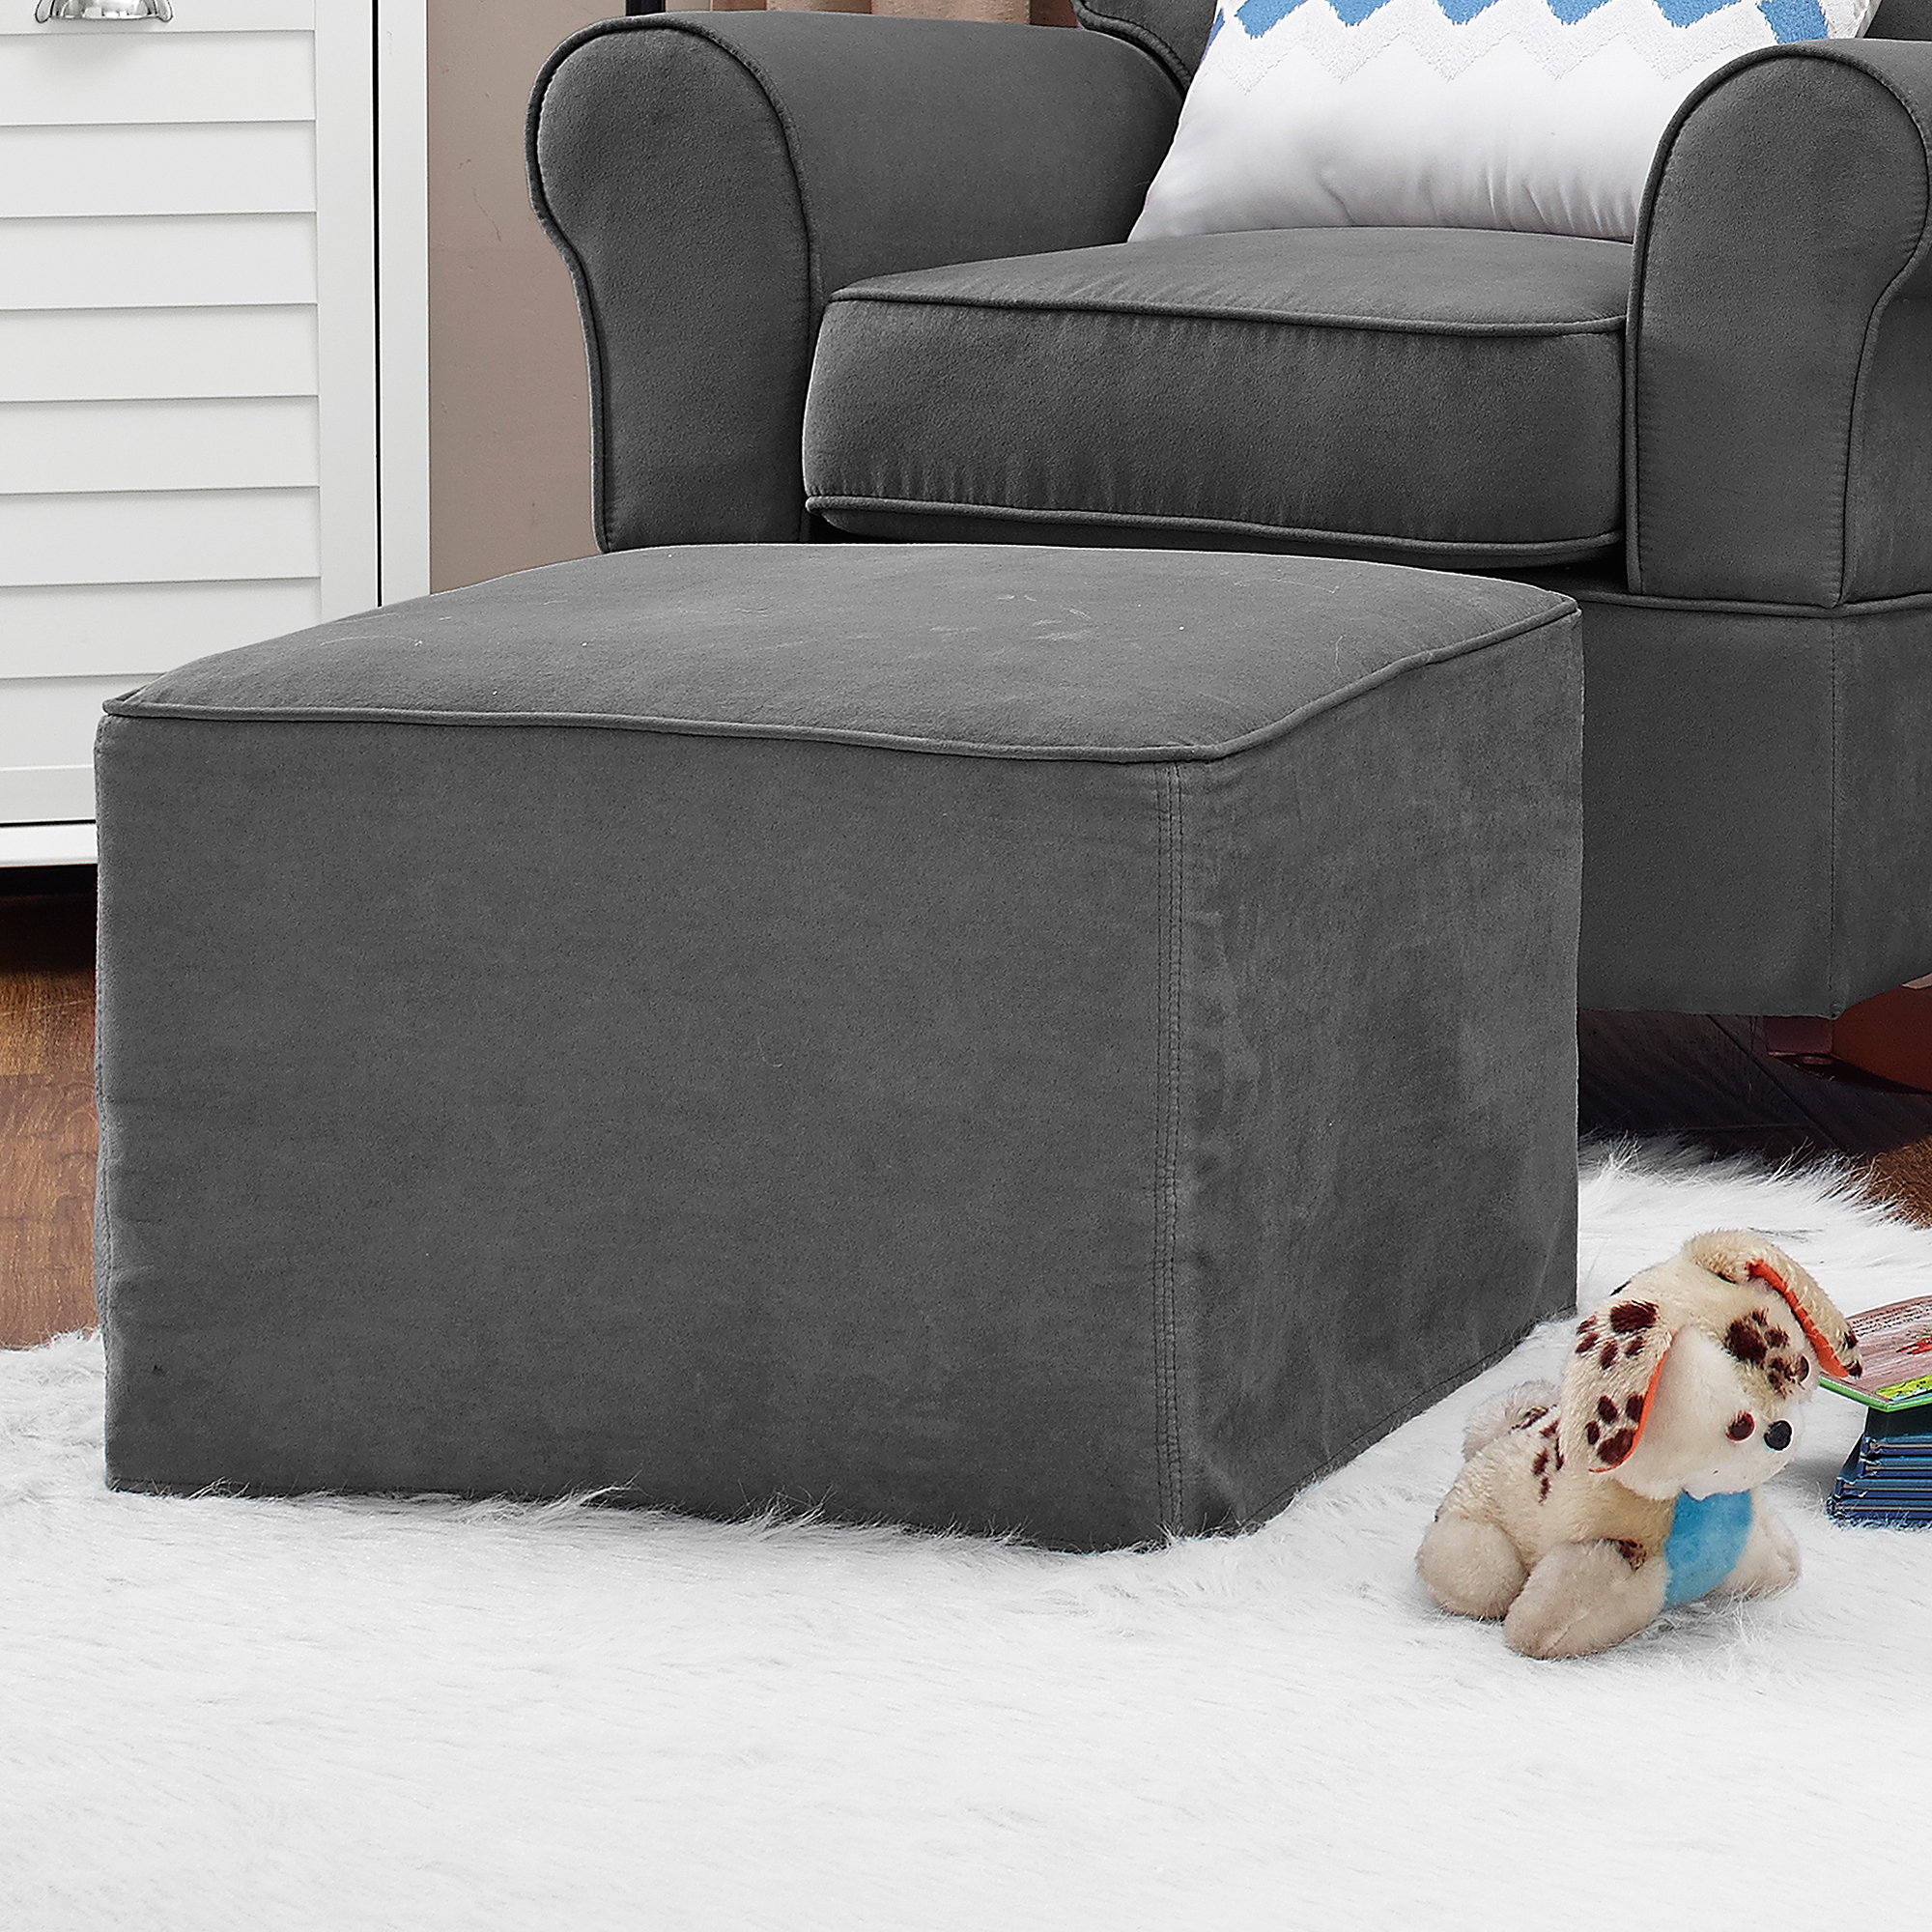 Abbey Swivel Glider Recliners With Fashionable Baby Relax Abby Rocker Gray – Walmart (View 16 of 20)